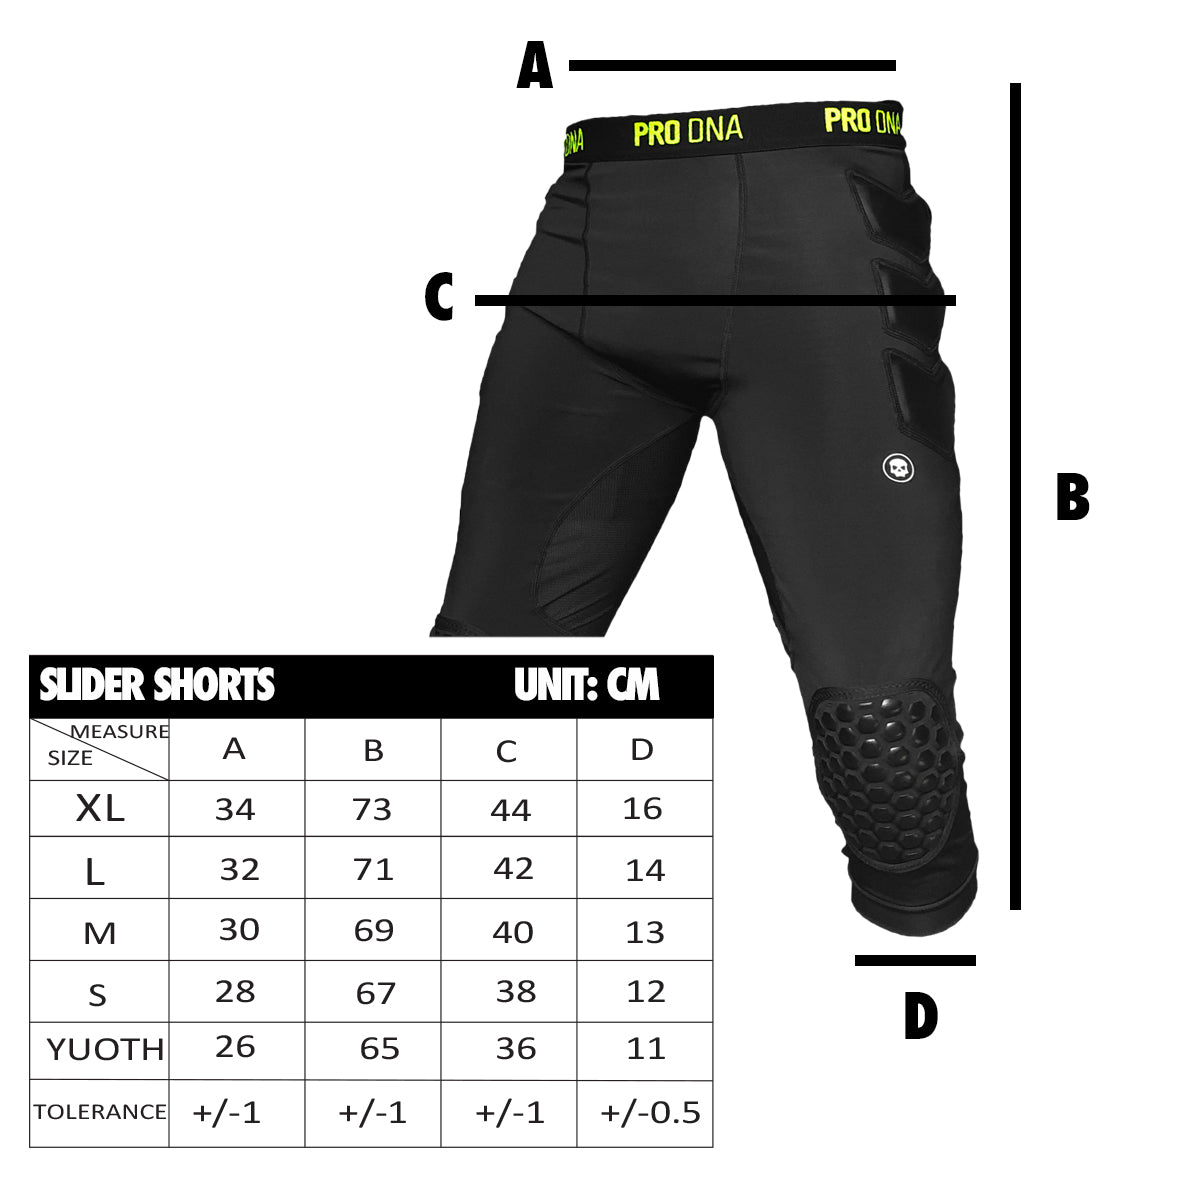 Infamous PRO DNA Slider Shorts Sizing Chart